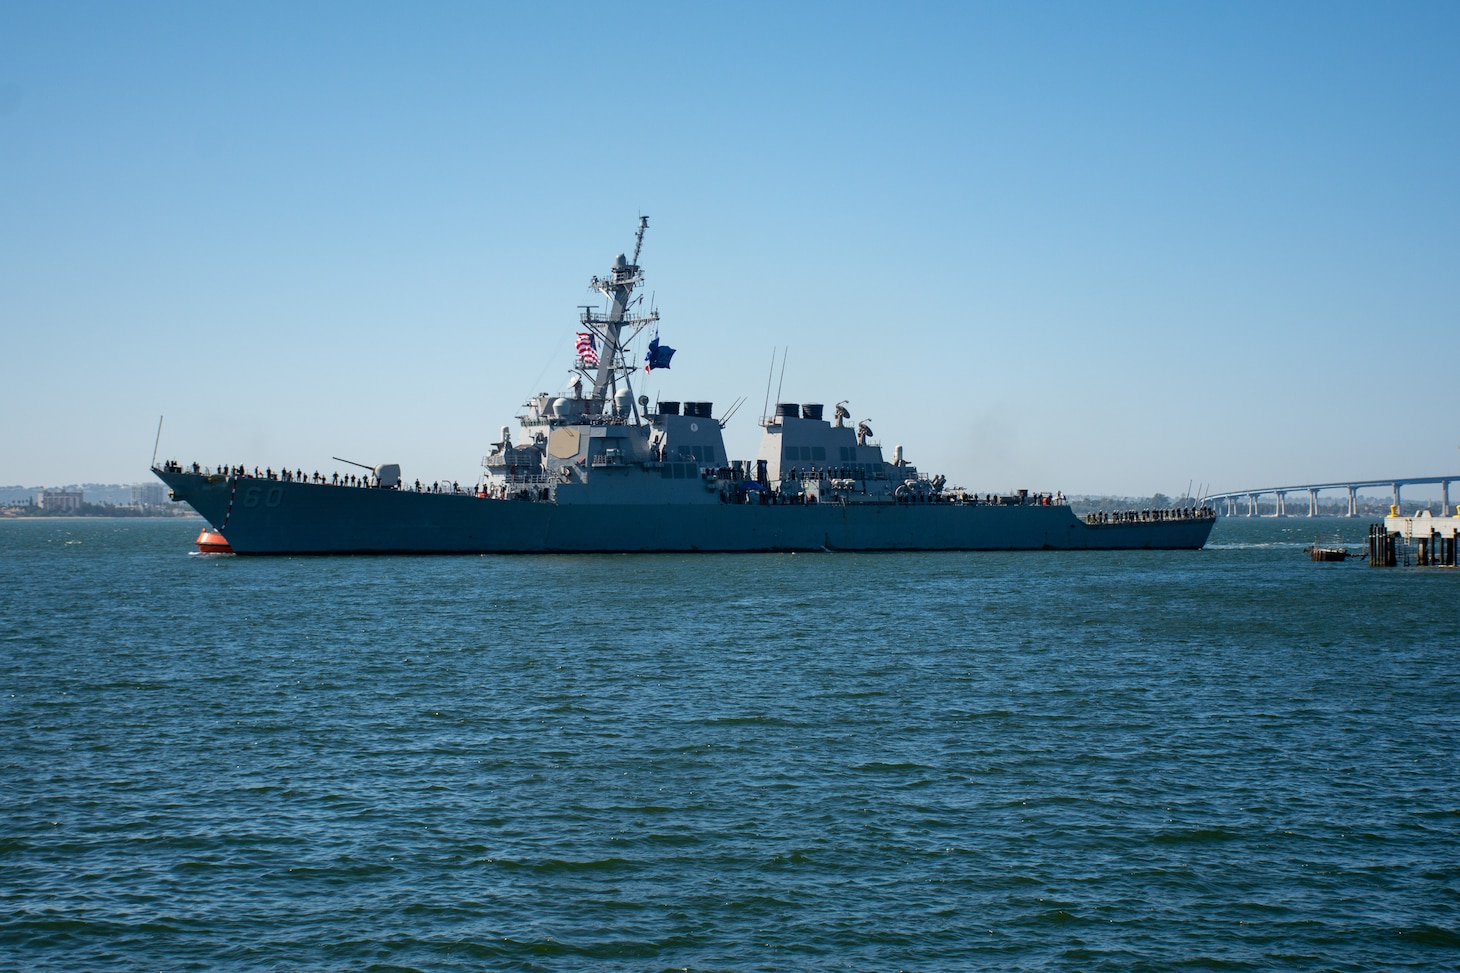 Guided-missile destroyer USS Paul Hamilton (DDG 60) returns to its homeport of San Diego